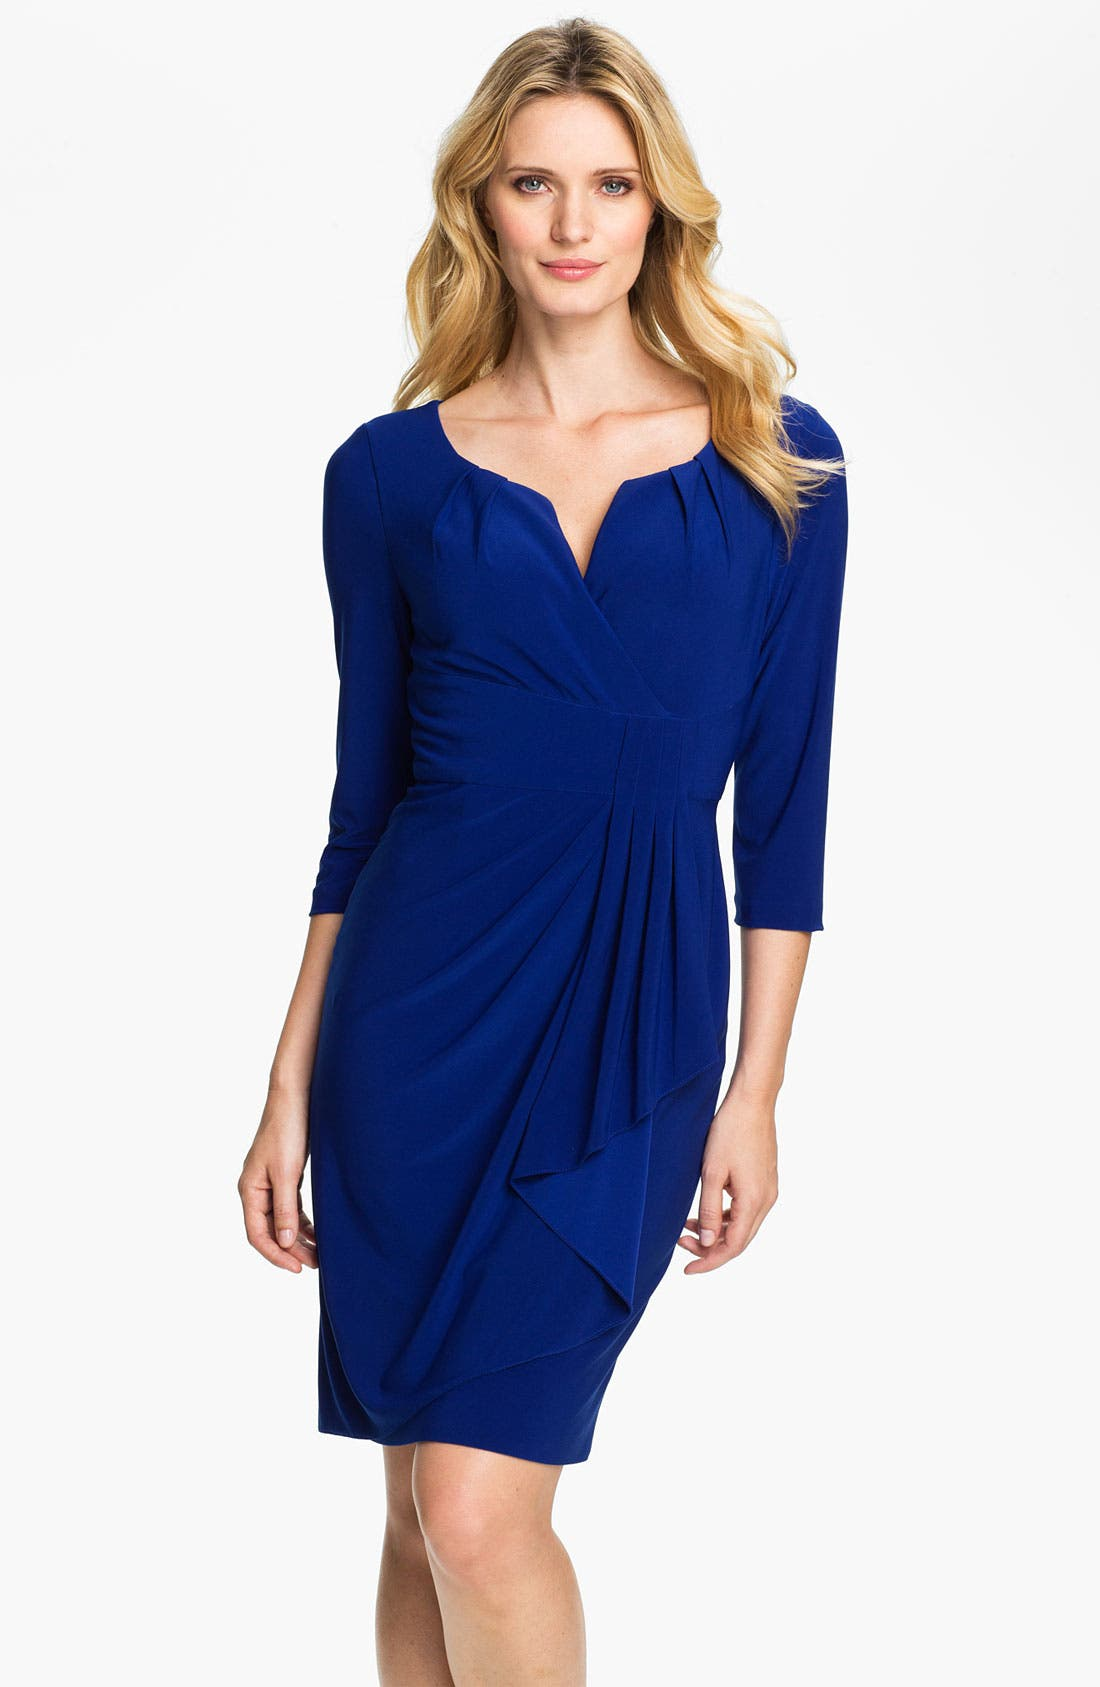 Alternate Image 1 Selected - Adrianna Papell Side Drape Surplice Dress (Petite)